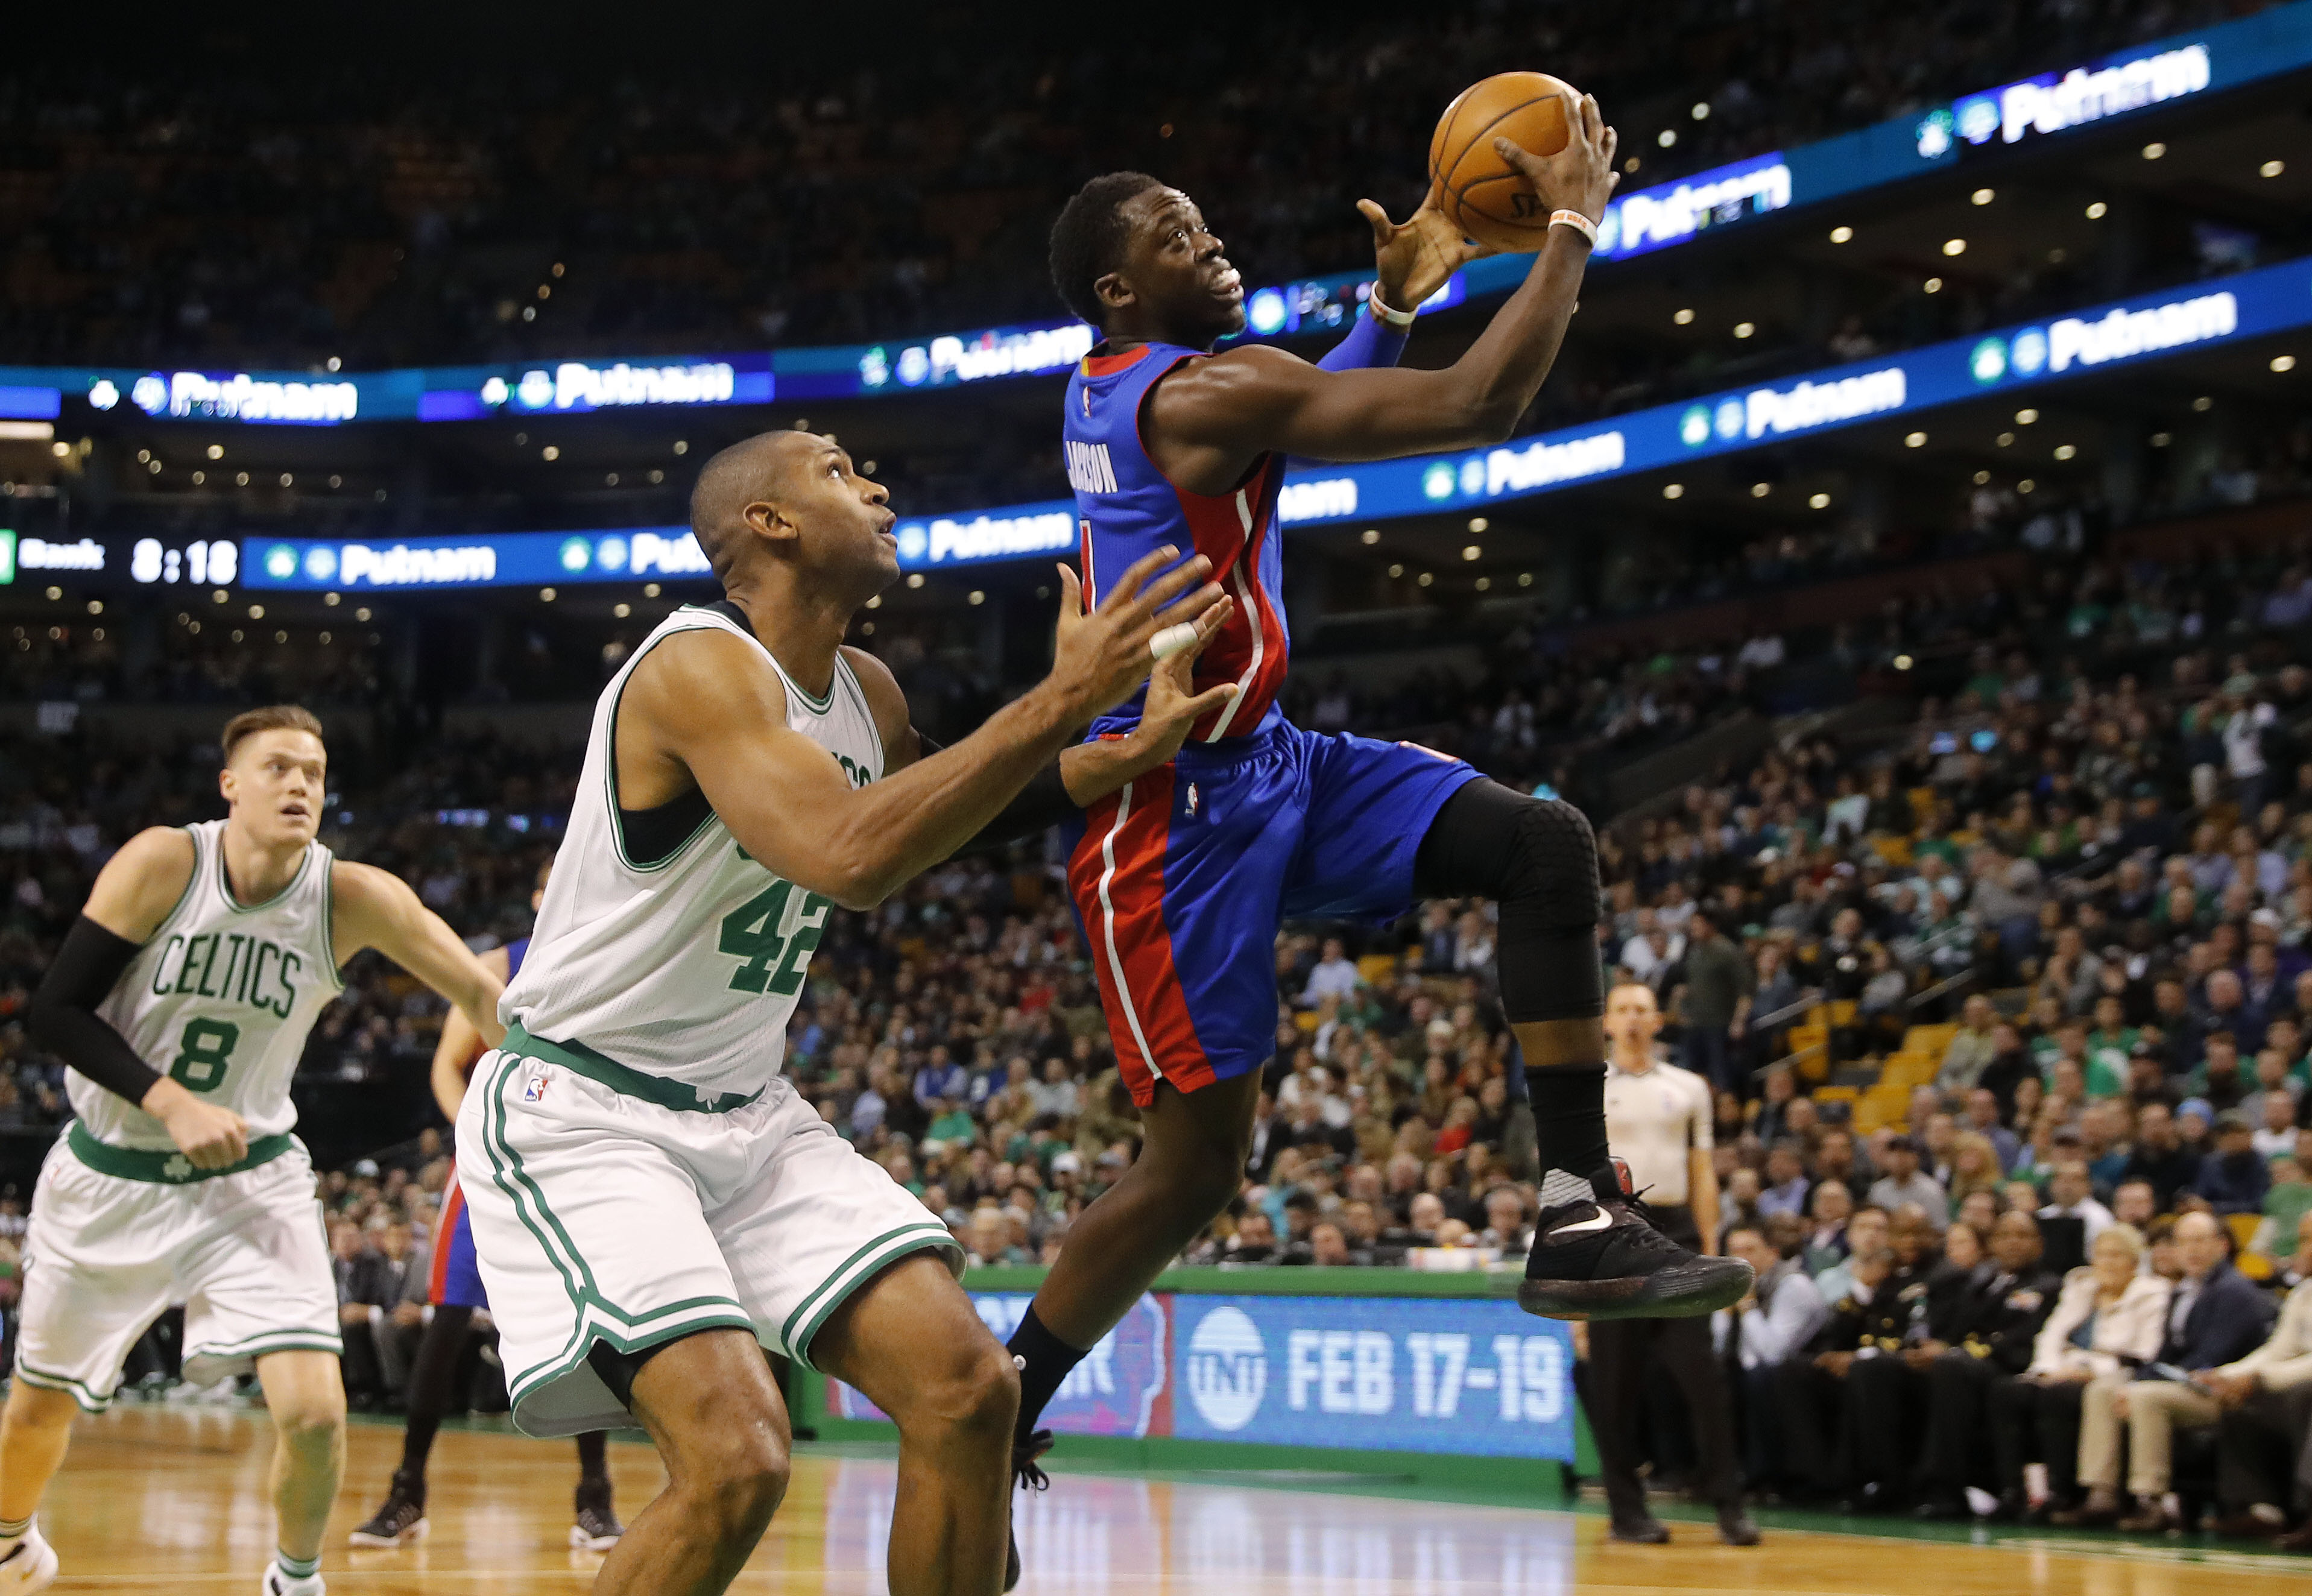 Jan 30, 2017; Boston, MA, USA; Detroit Pistons guard Reggie Jackson (1) drives past Boston Celtics center Al Horford (42) during the first half at TD Garden. Mandatory Credit: Winslow Townson-USA TODAY Sports